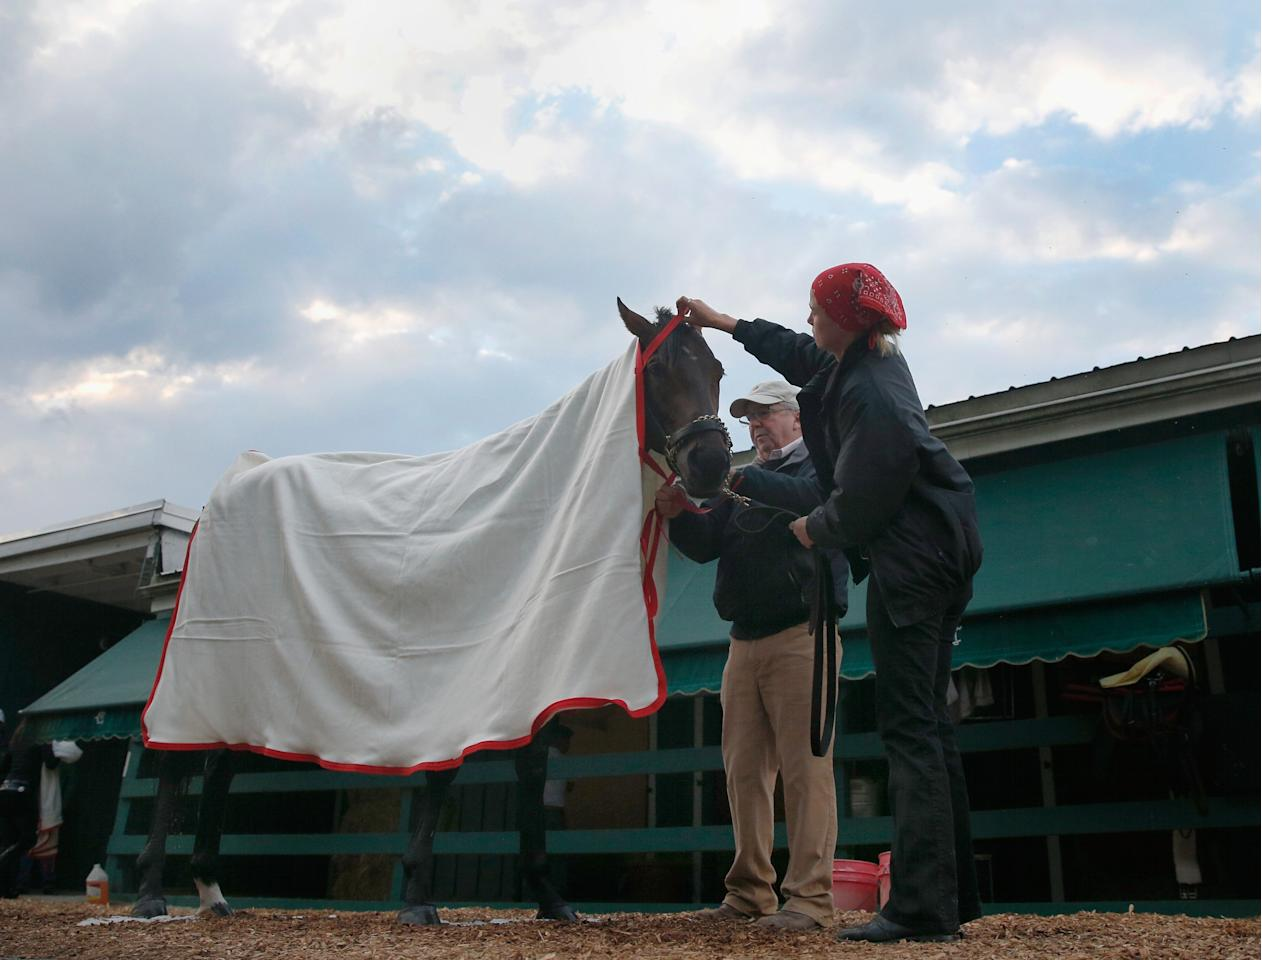 BALTIMORE, MD - MAY 15:  Kentucky Derby winner Orb gets a blanket put on him by exercise rider Jennifer Patterson and trainer Shug McGaughey  following a workout in preparation for the 138th Preakness Stakes at Pimlico Race Course on May 15, 2013 in Baltimore, Maryland.  (Photo by Rob Carr/Getty Images)